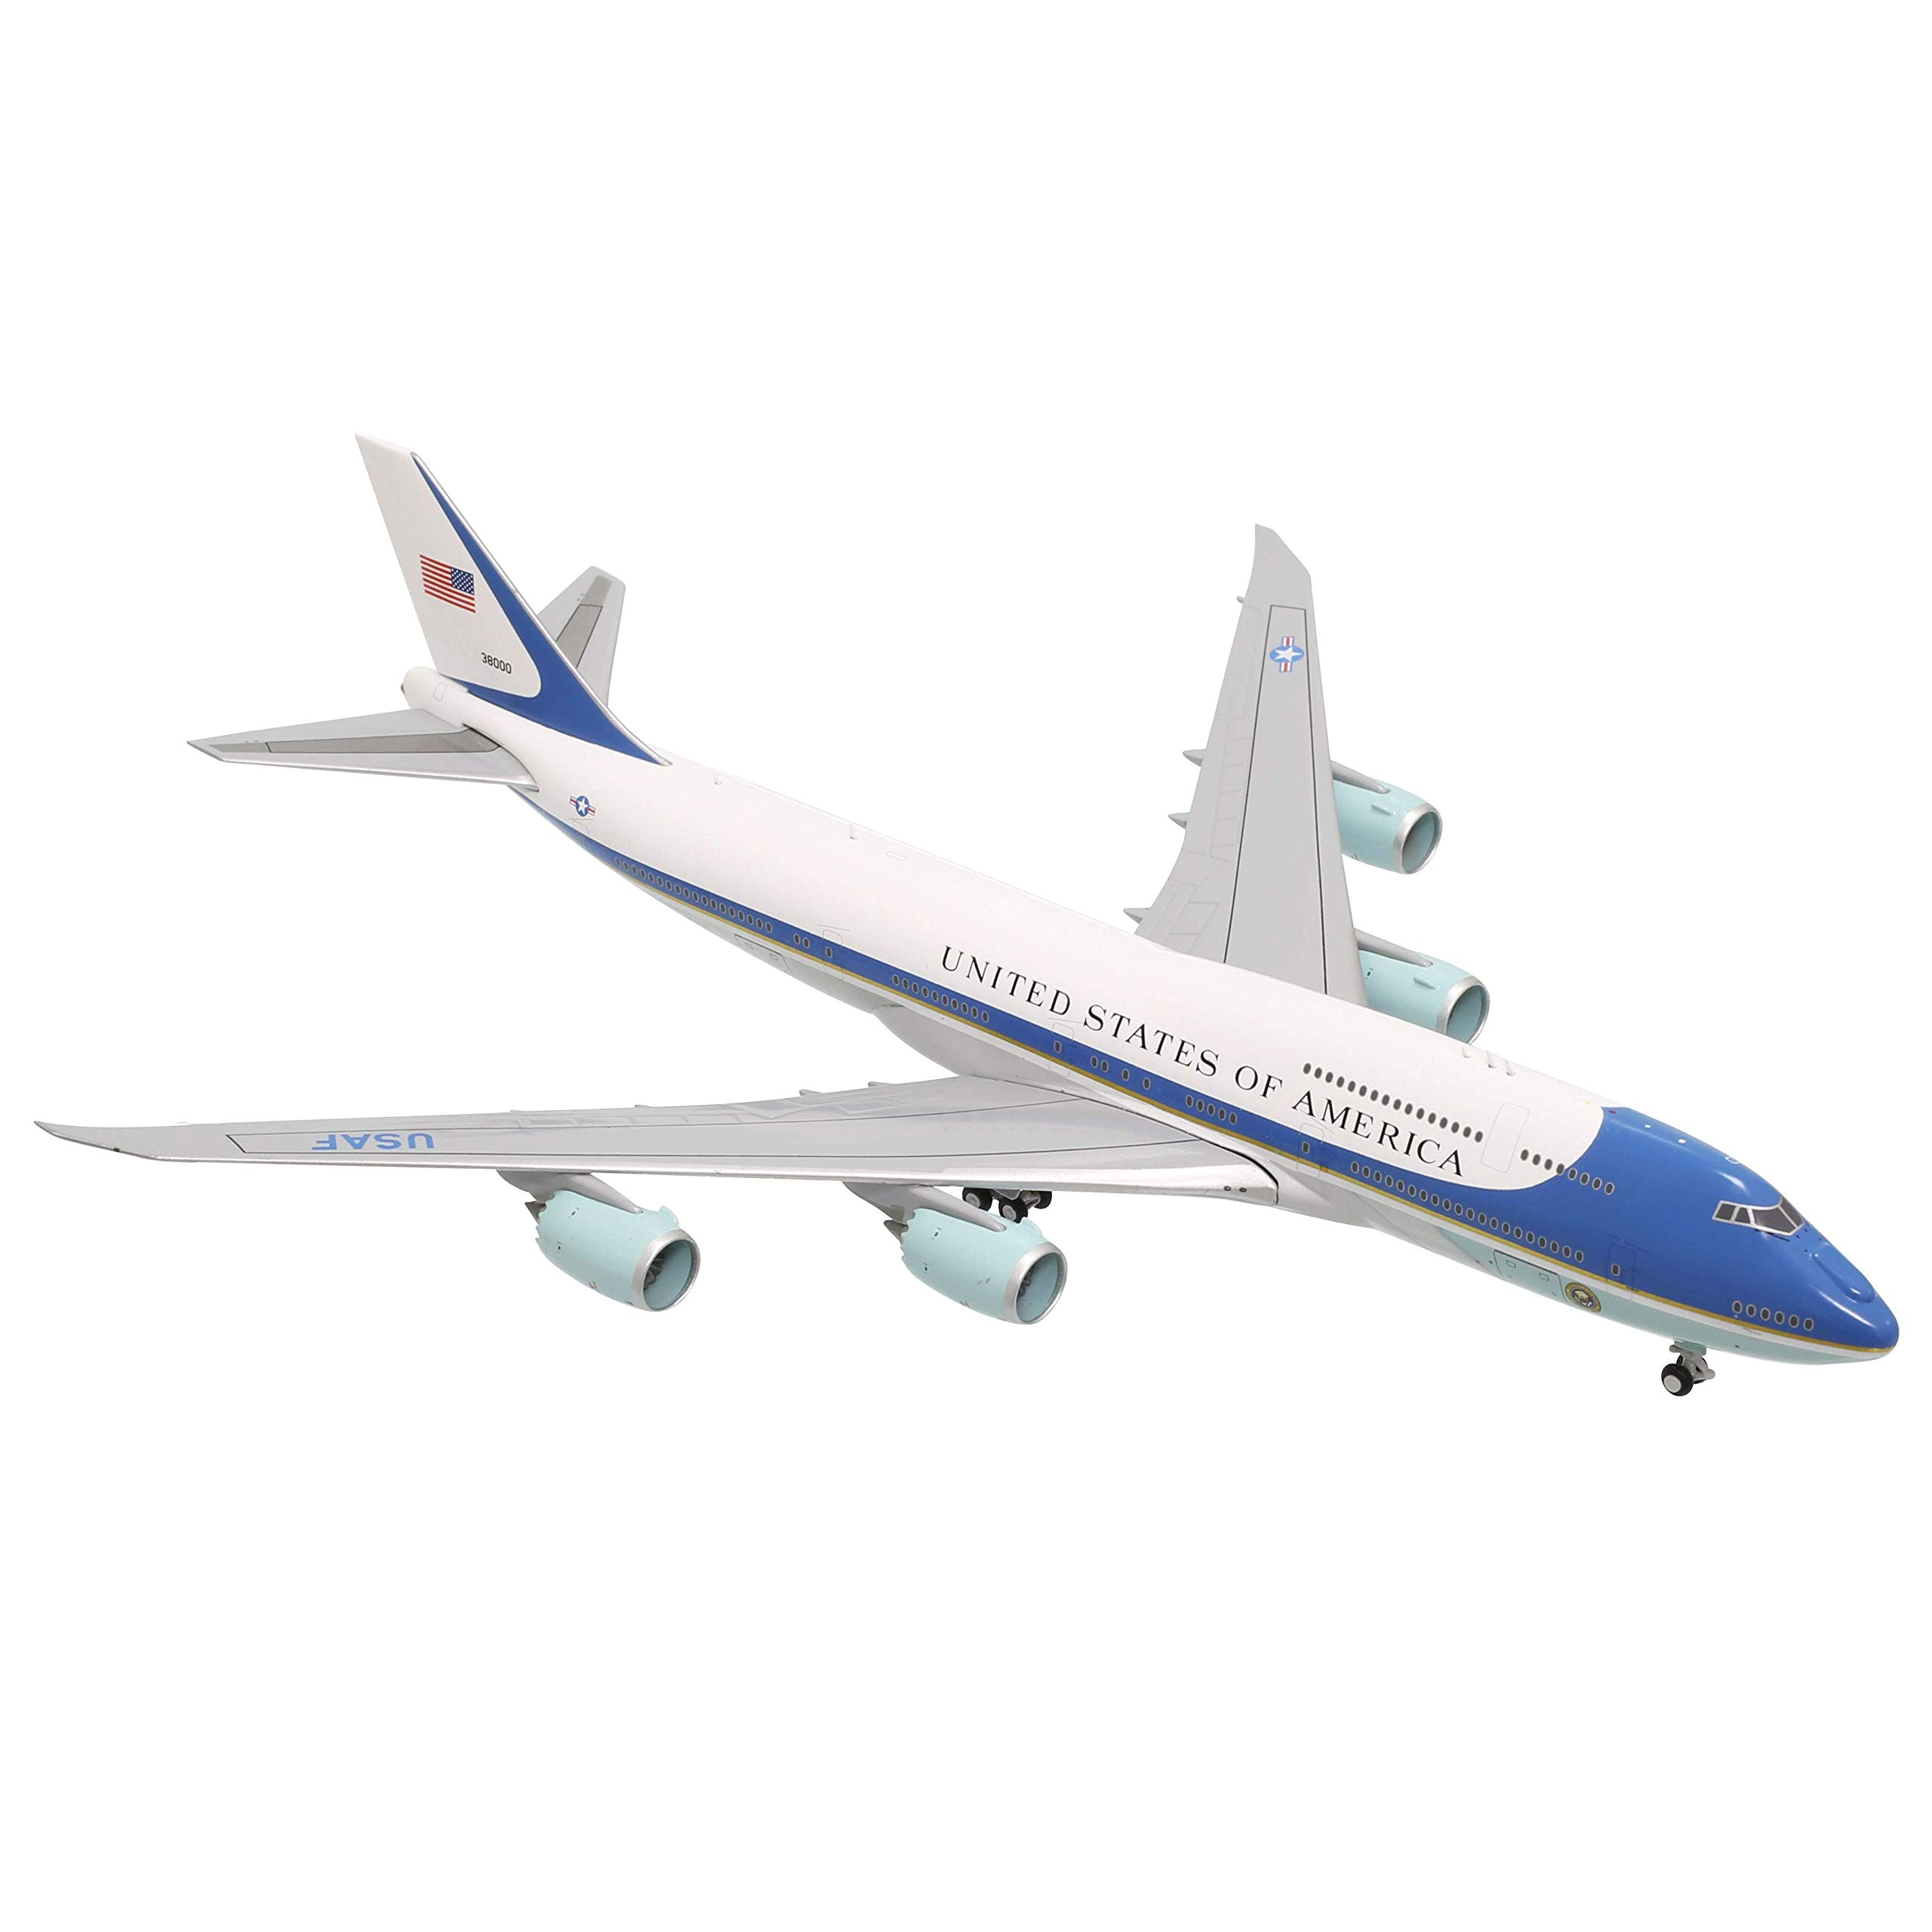 GeminiJets United States Air Force B747-8i Air Force One 38000 1:400 Scale Diecast Model Airplane